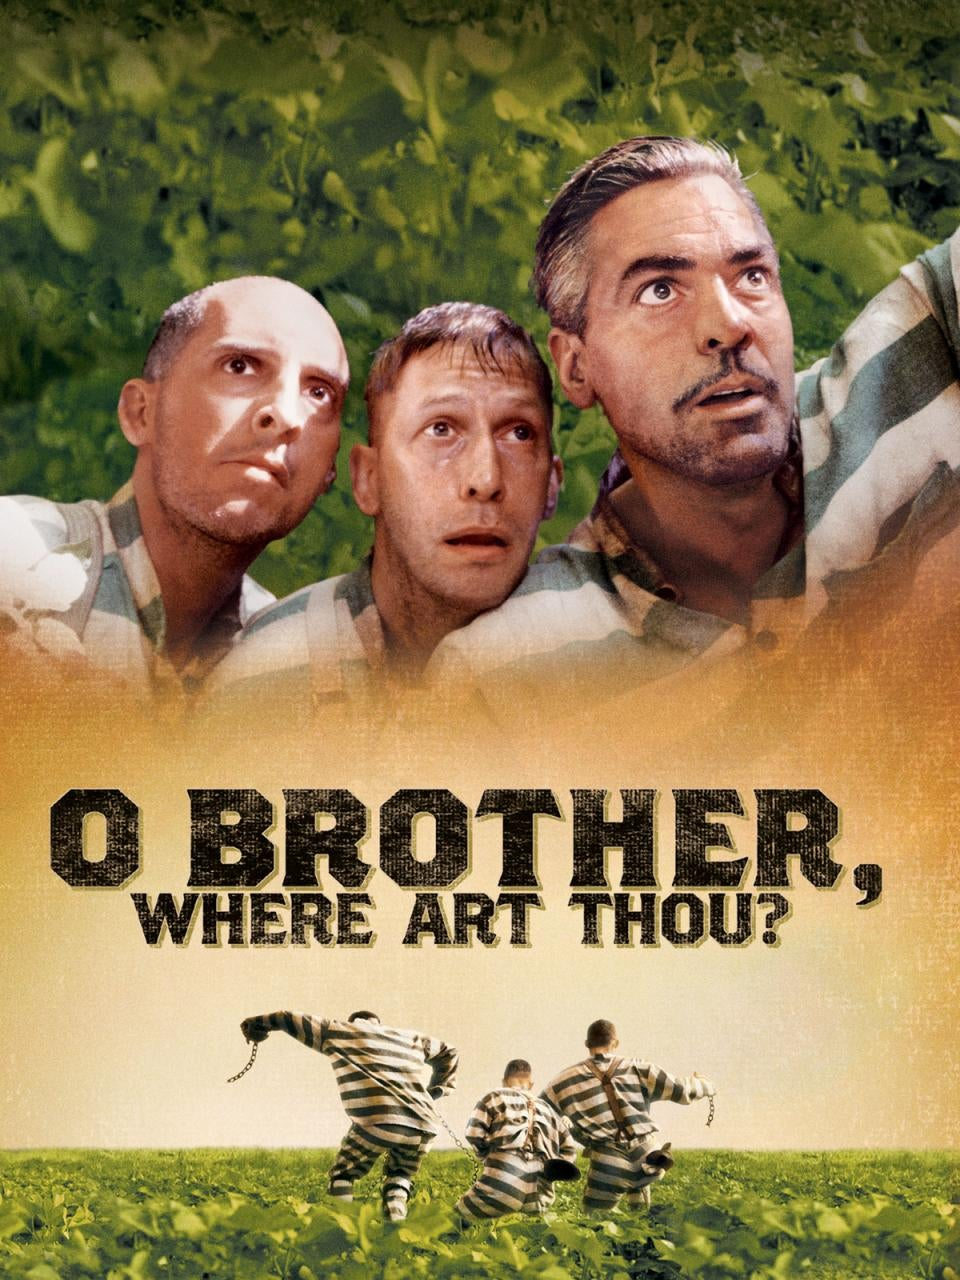 hero s journey o brother where art thou This is the talk page for discussing improvements to the o brother, where art thou article this is not a forum for general discussion of the article's subject.